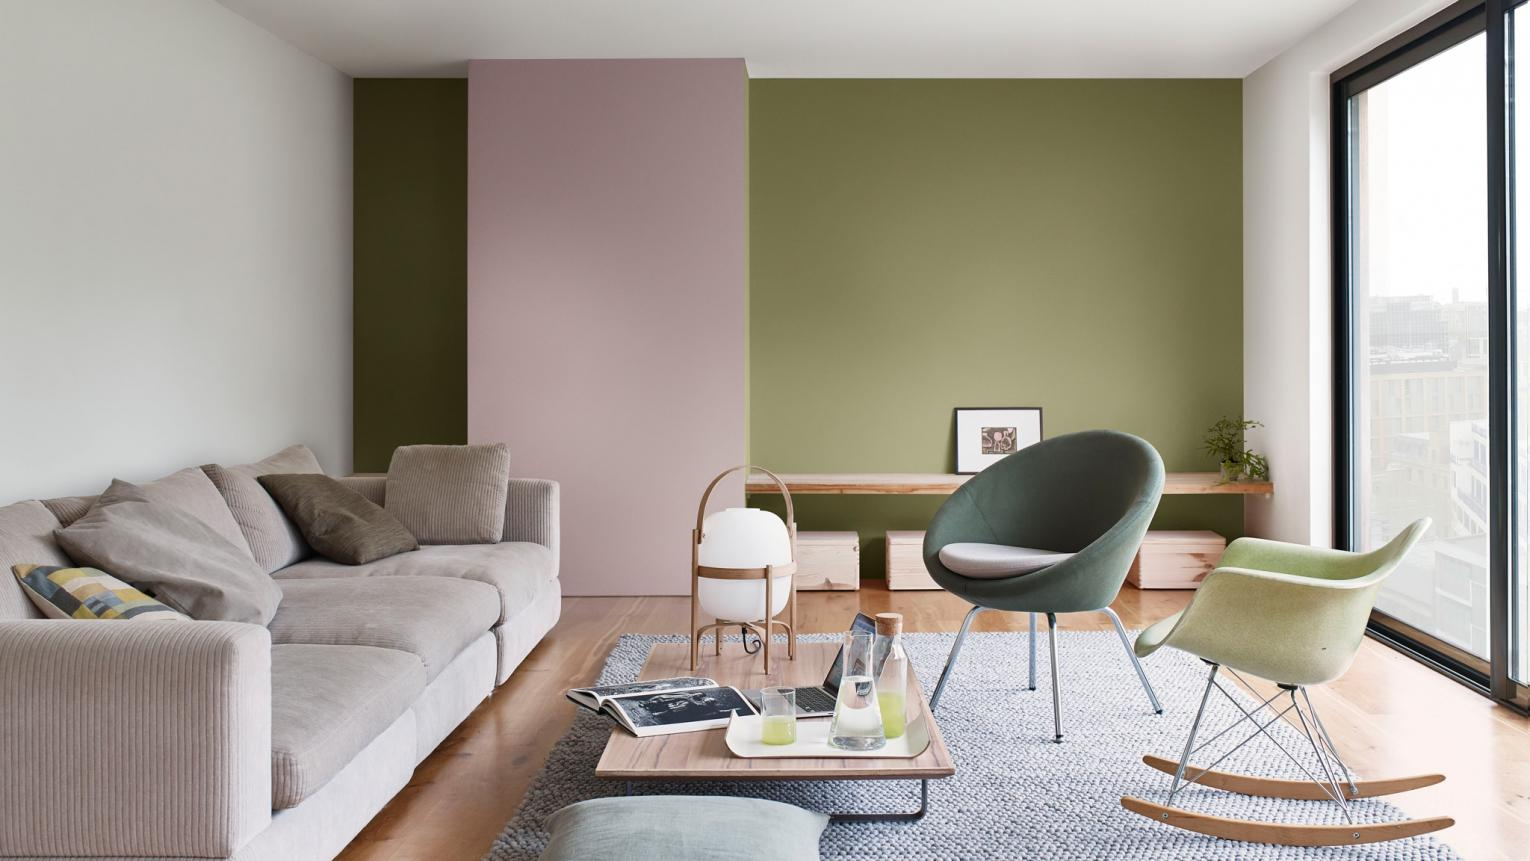 Dulux Colour-of-the-Year-2018- Playful & Dynamic Livingroom Inspiration Hong Kong 17